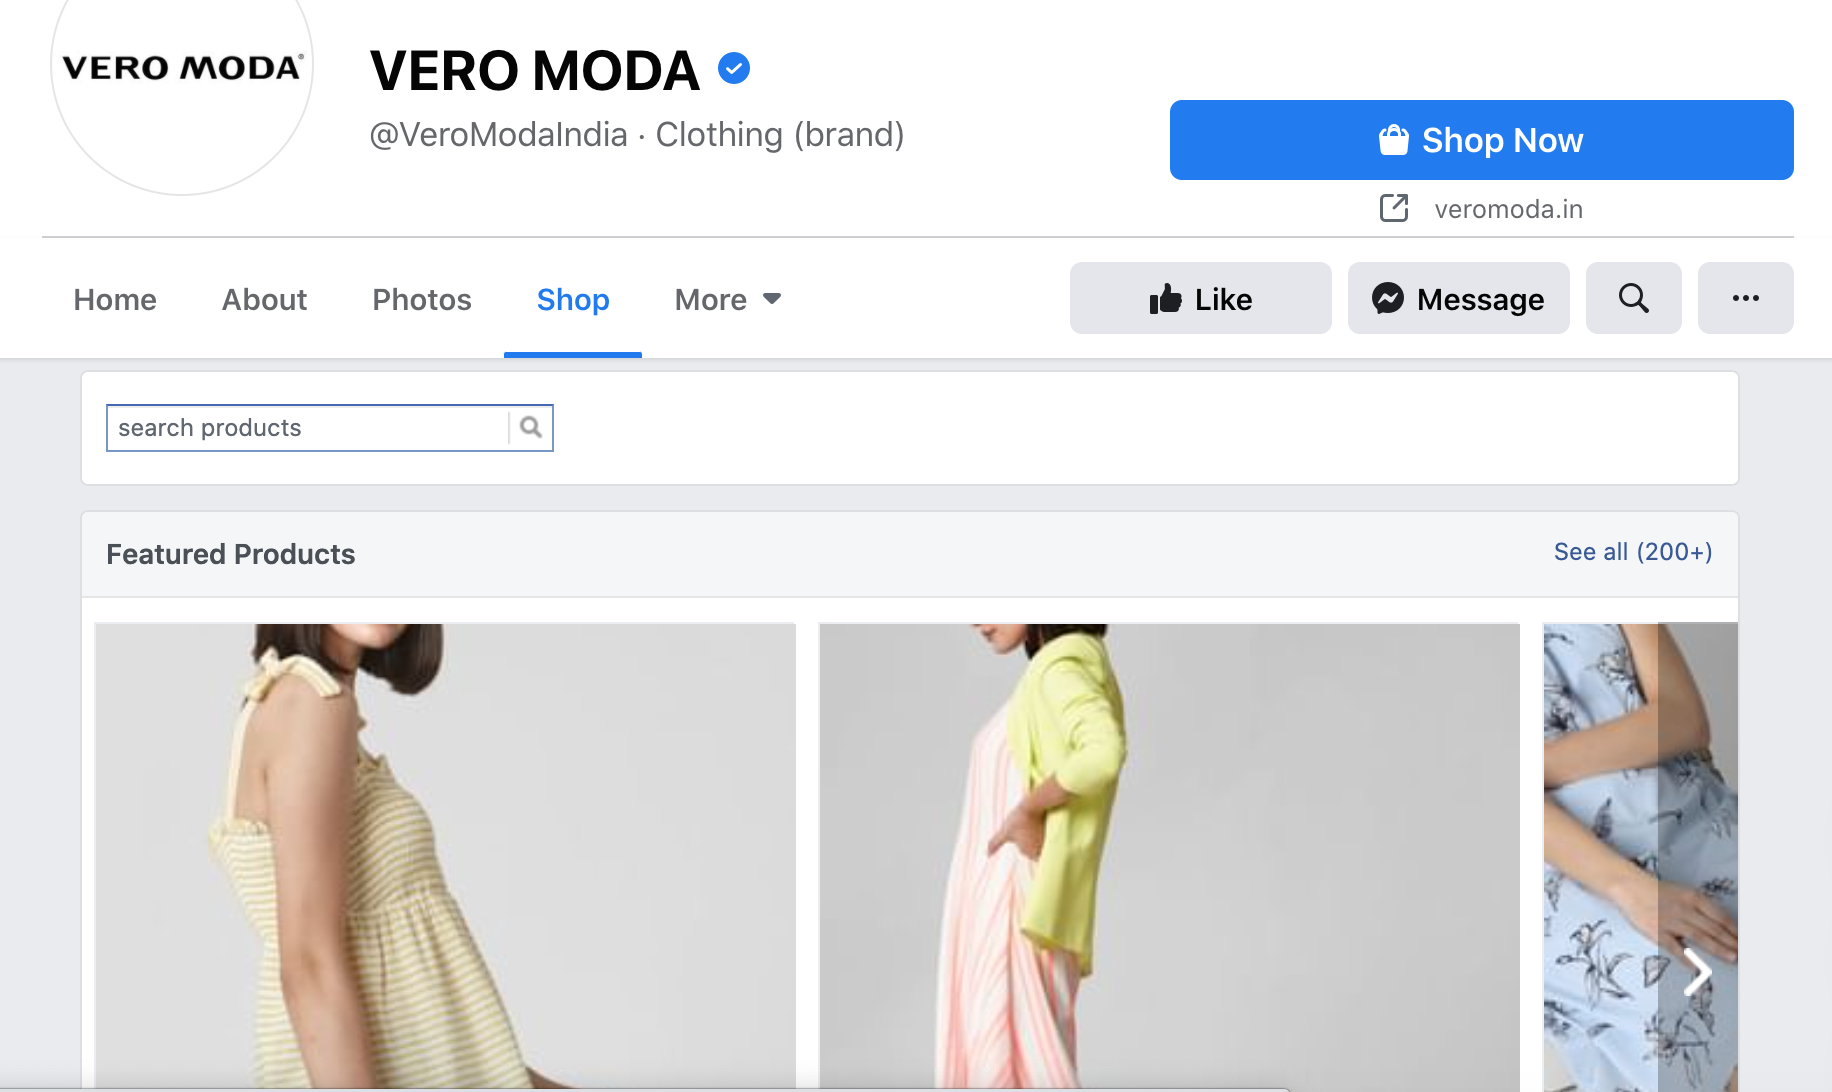 OnePlus uses Facebook Shop to attract social users for their eCommerce activities